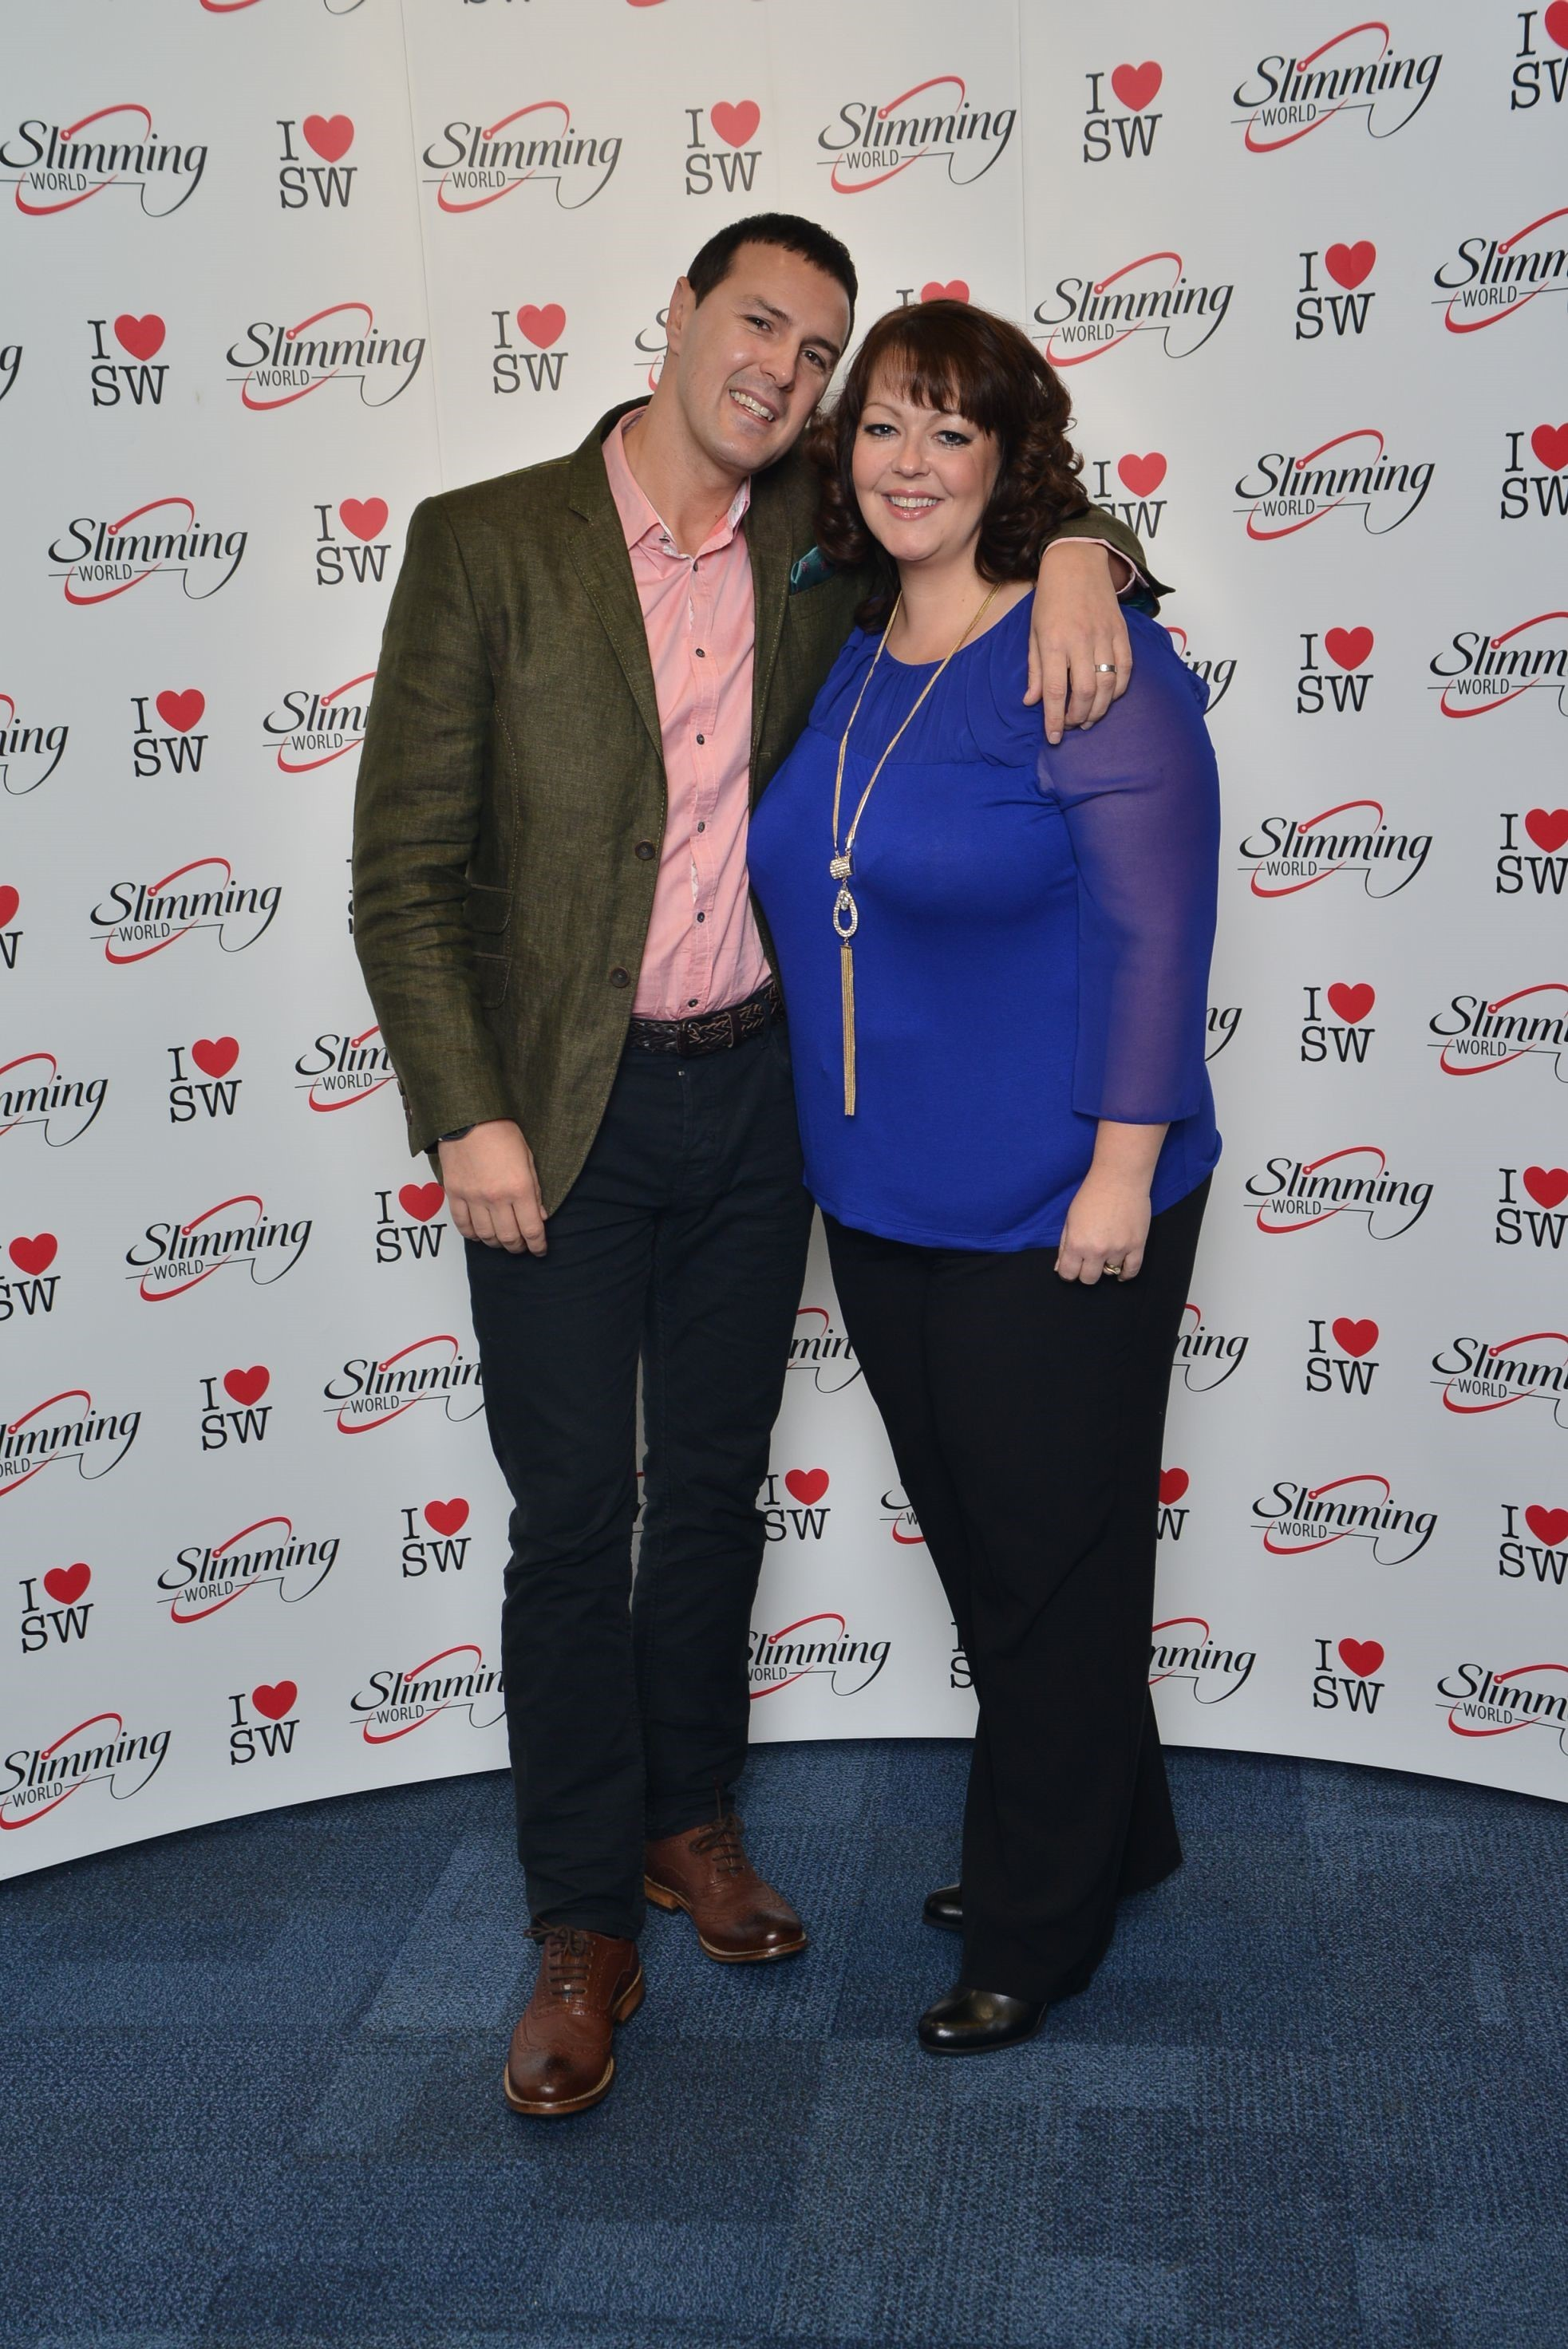 MEETING: Slimming World consultant Annamarie Vincent meets comedian and TV presenter Paddy McGuinness